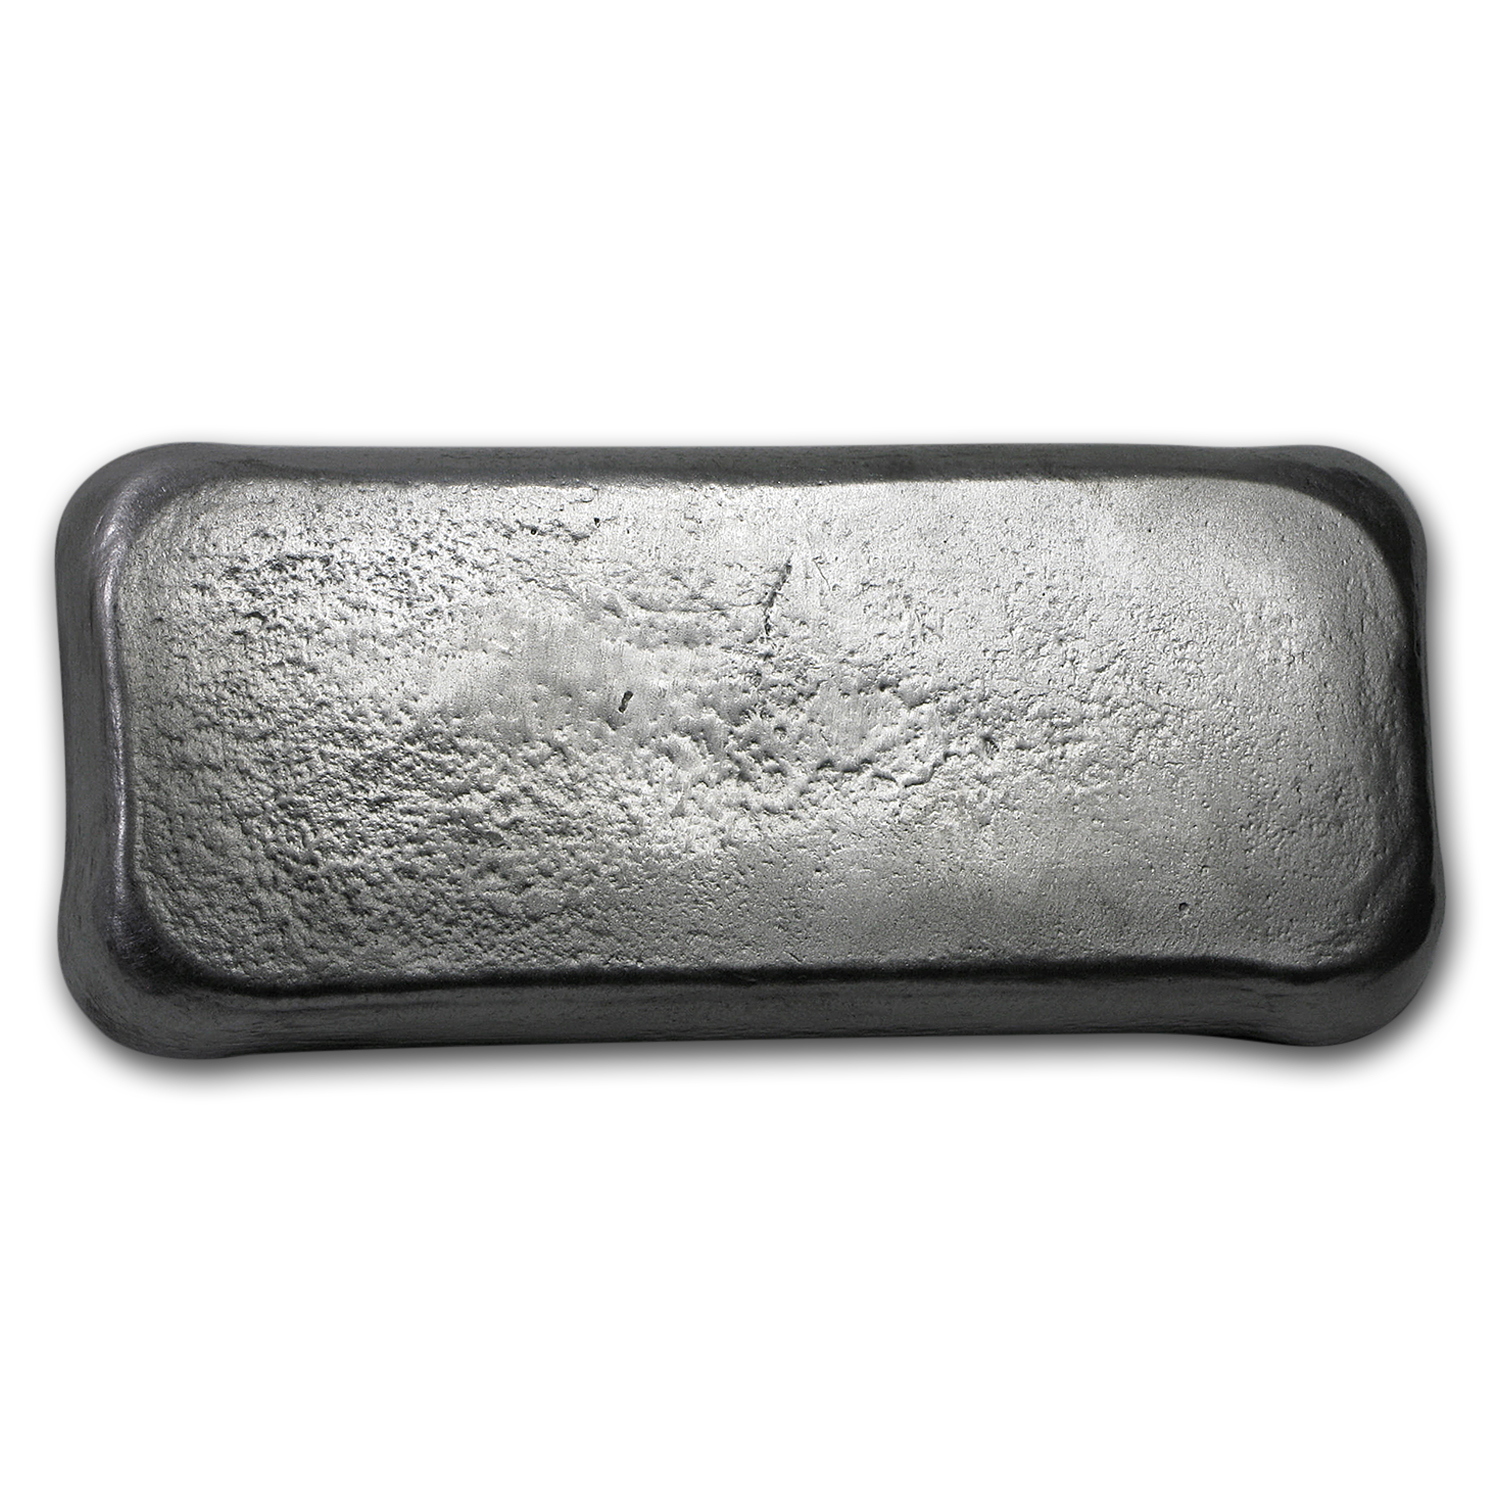 15 oz Silver Bar - Bison Bullion